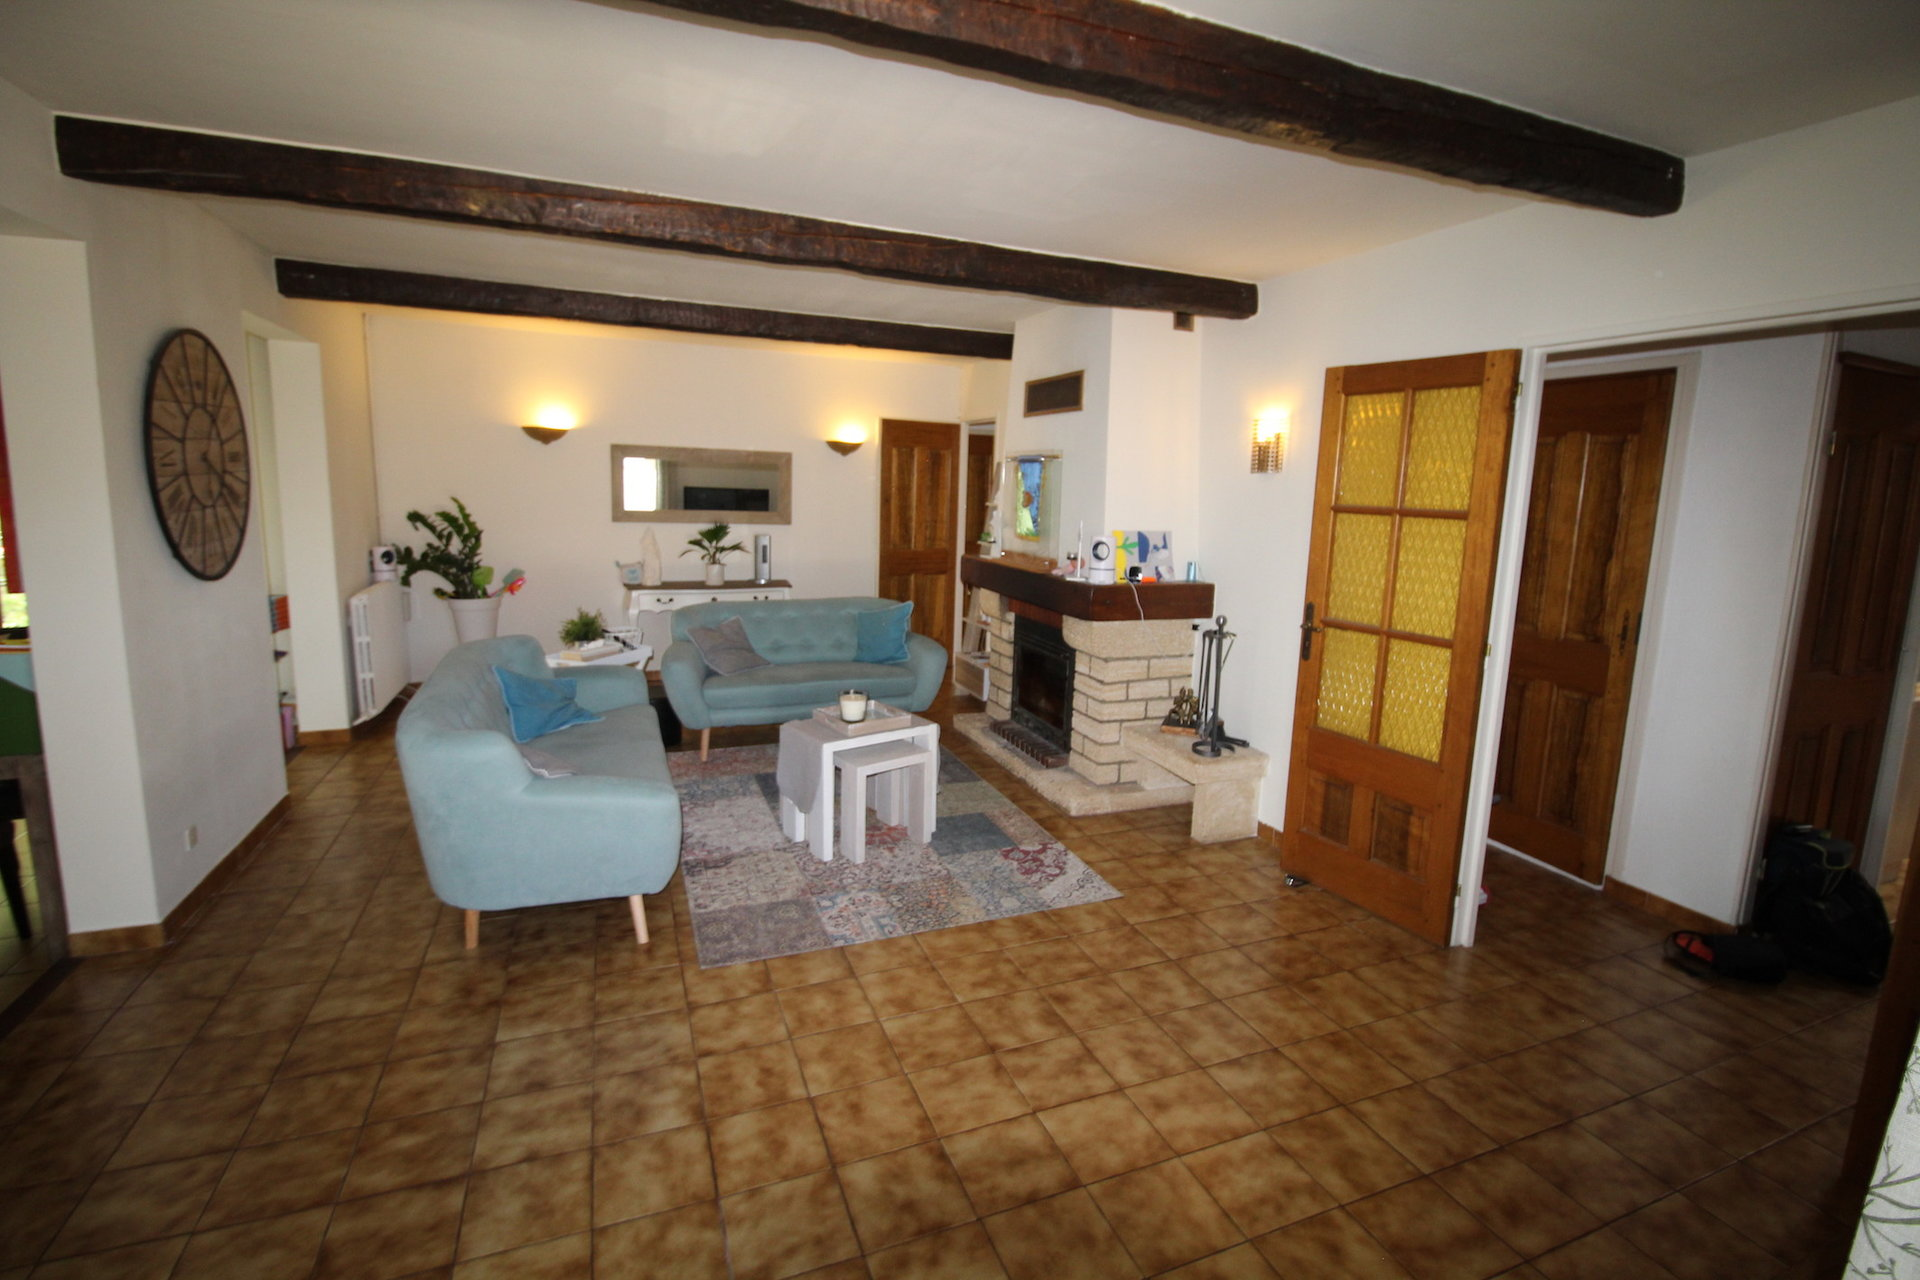 La Celle, a Provencal house at 35 minutes from the seaside